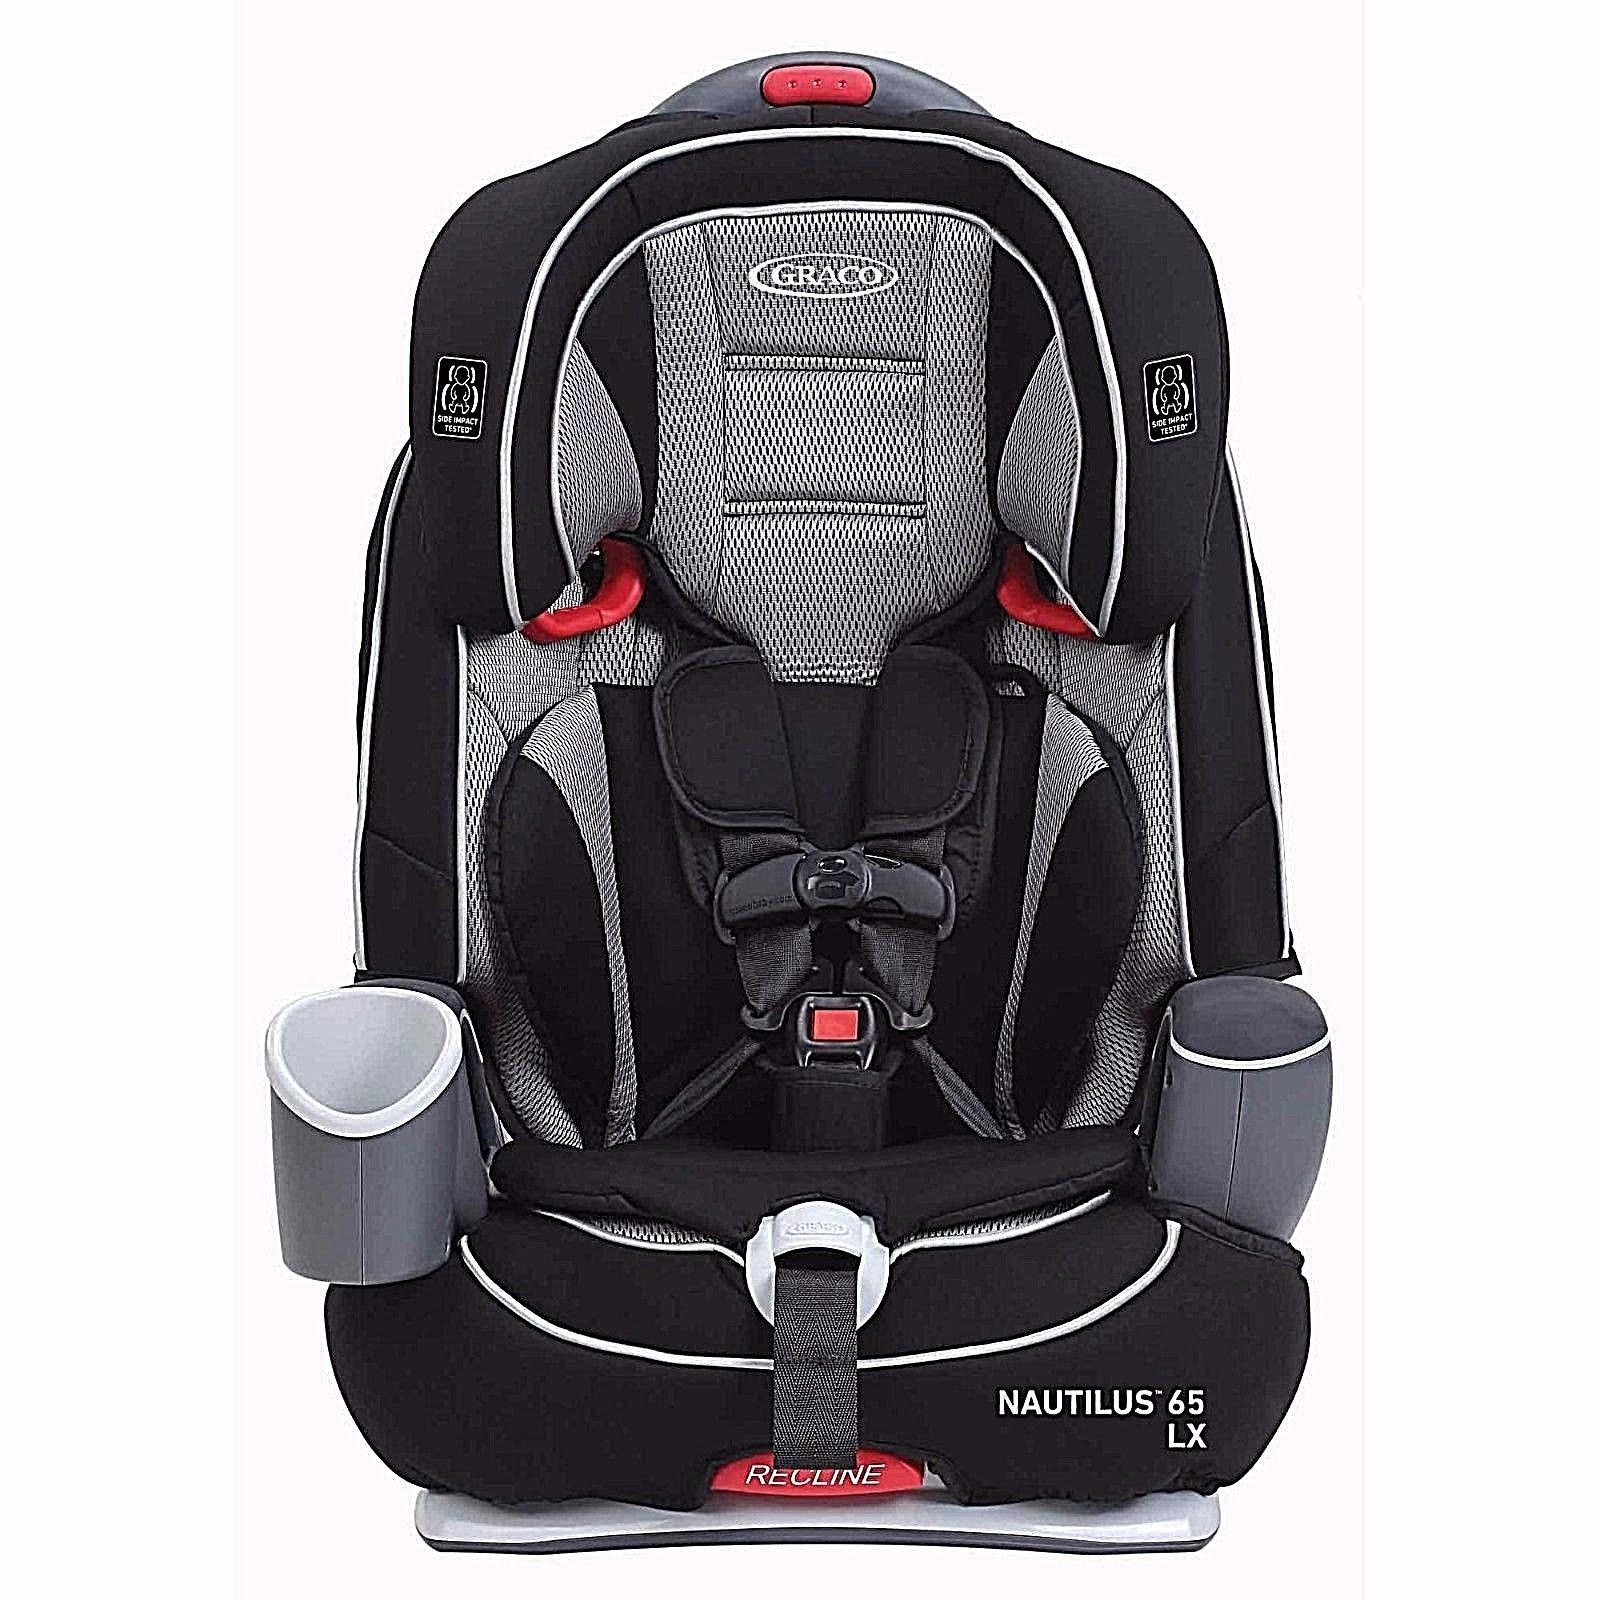 Graco Nautilus Lx 65 3 In 1 Harness Booster Car Seat Baby Safety Travel Kids